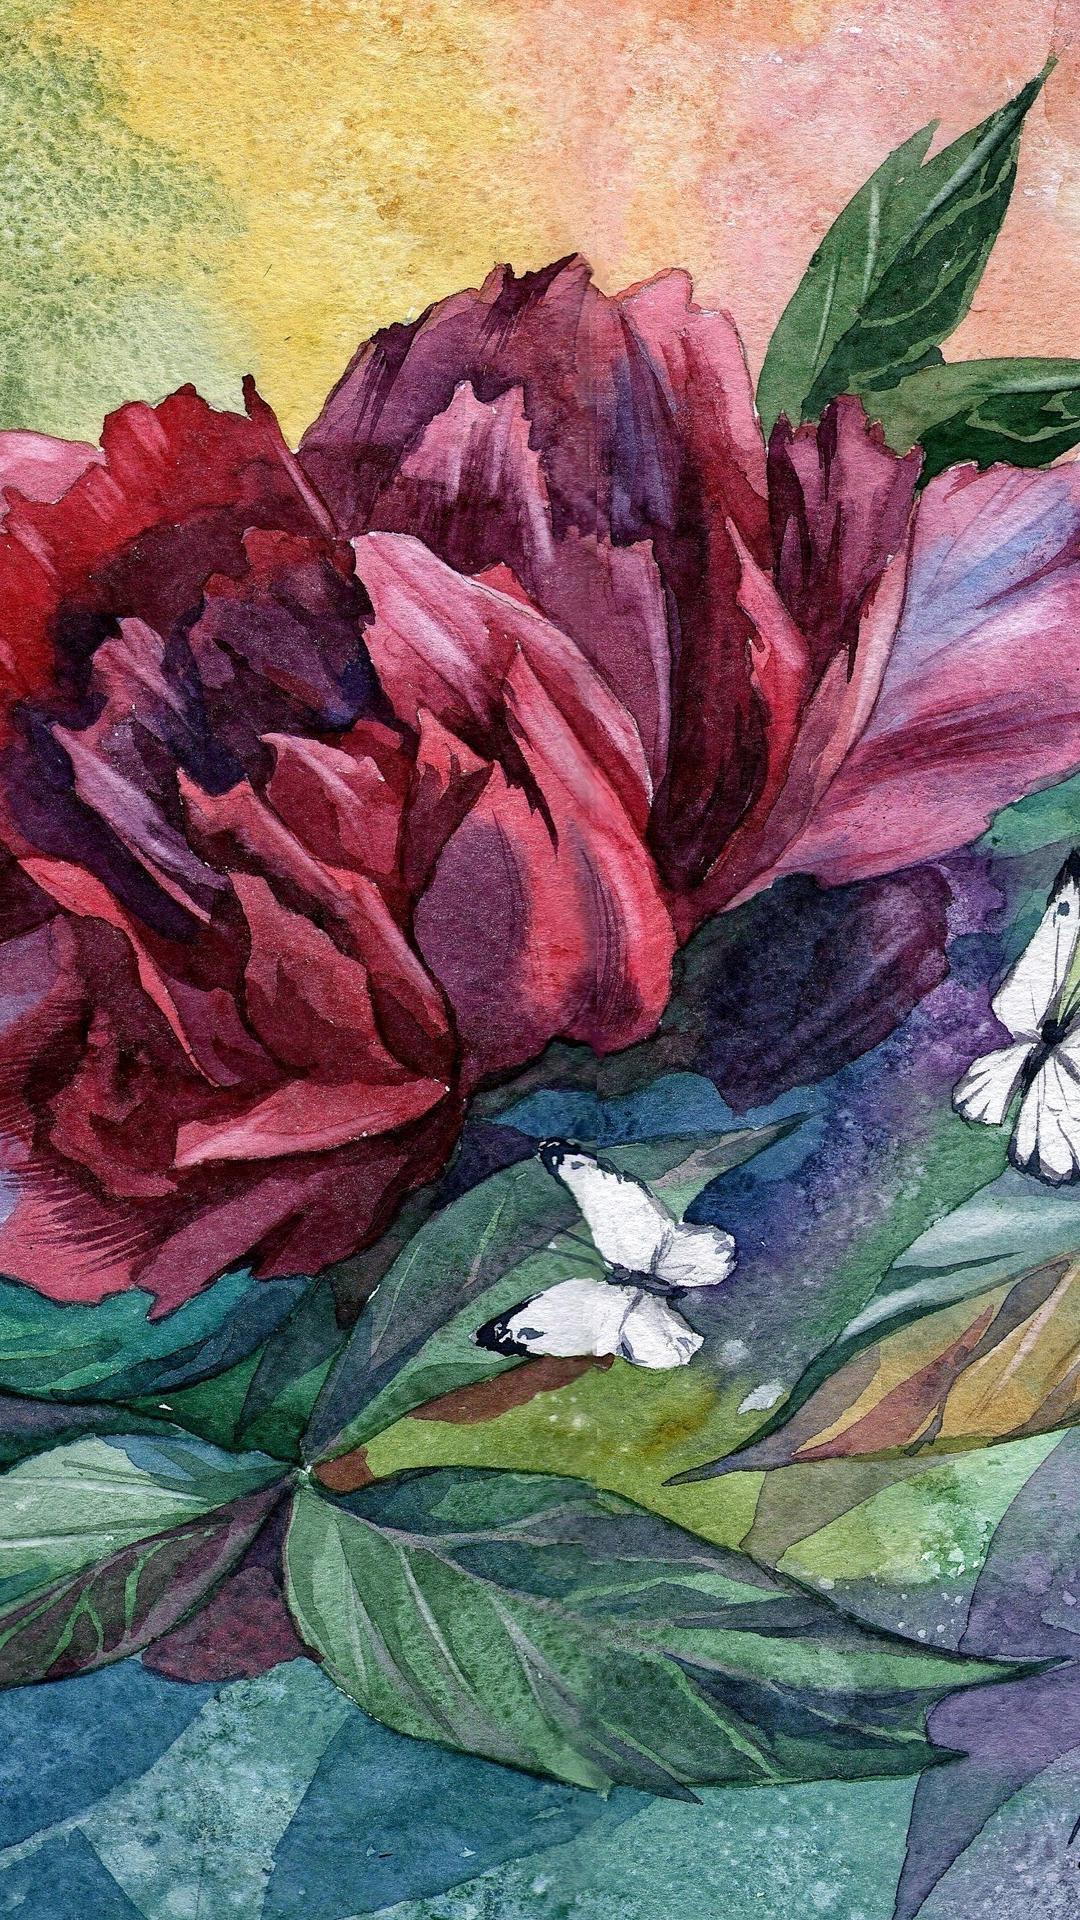 Free Download Nature Flowers Leaves Artwork Watercolor Peony Butterflies Wallpaper 1080x1920 For Your Desktop Mobile Tablet Explore 41 Watercolor Peony Wallpaper Peony Wallpaper Unusual Wallpapers For The Home Unusual